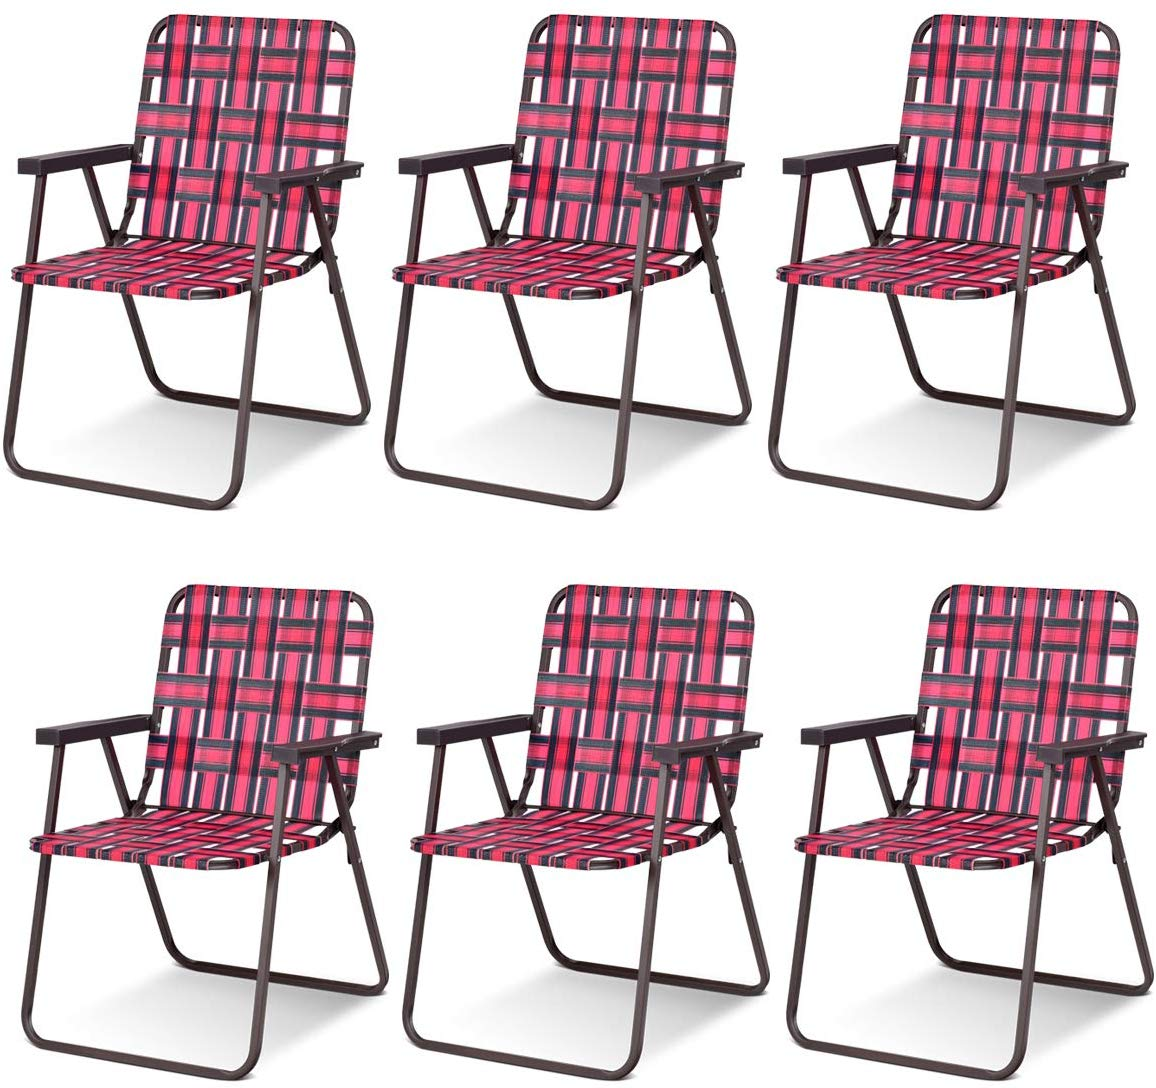 Giantex 6 PCS Chair